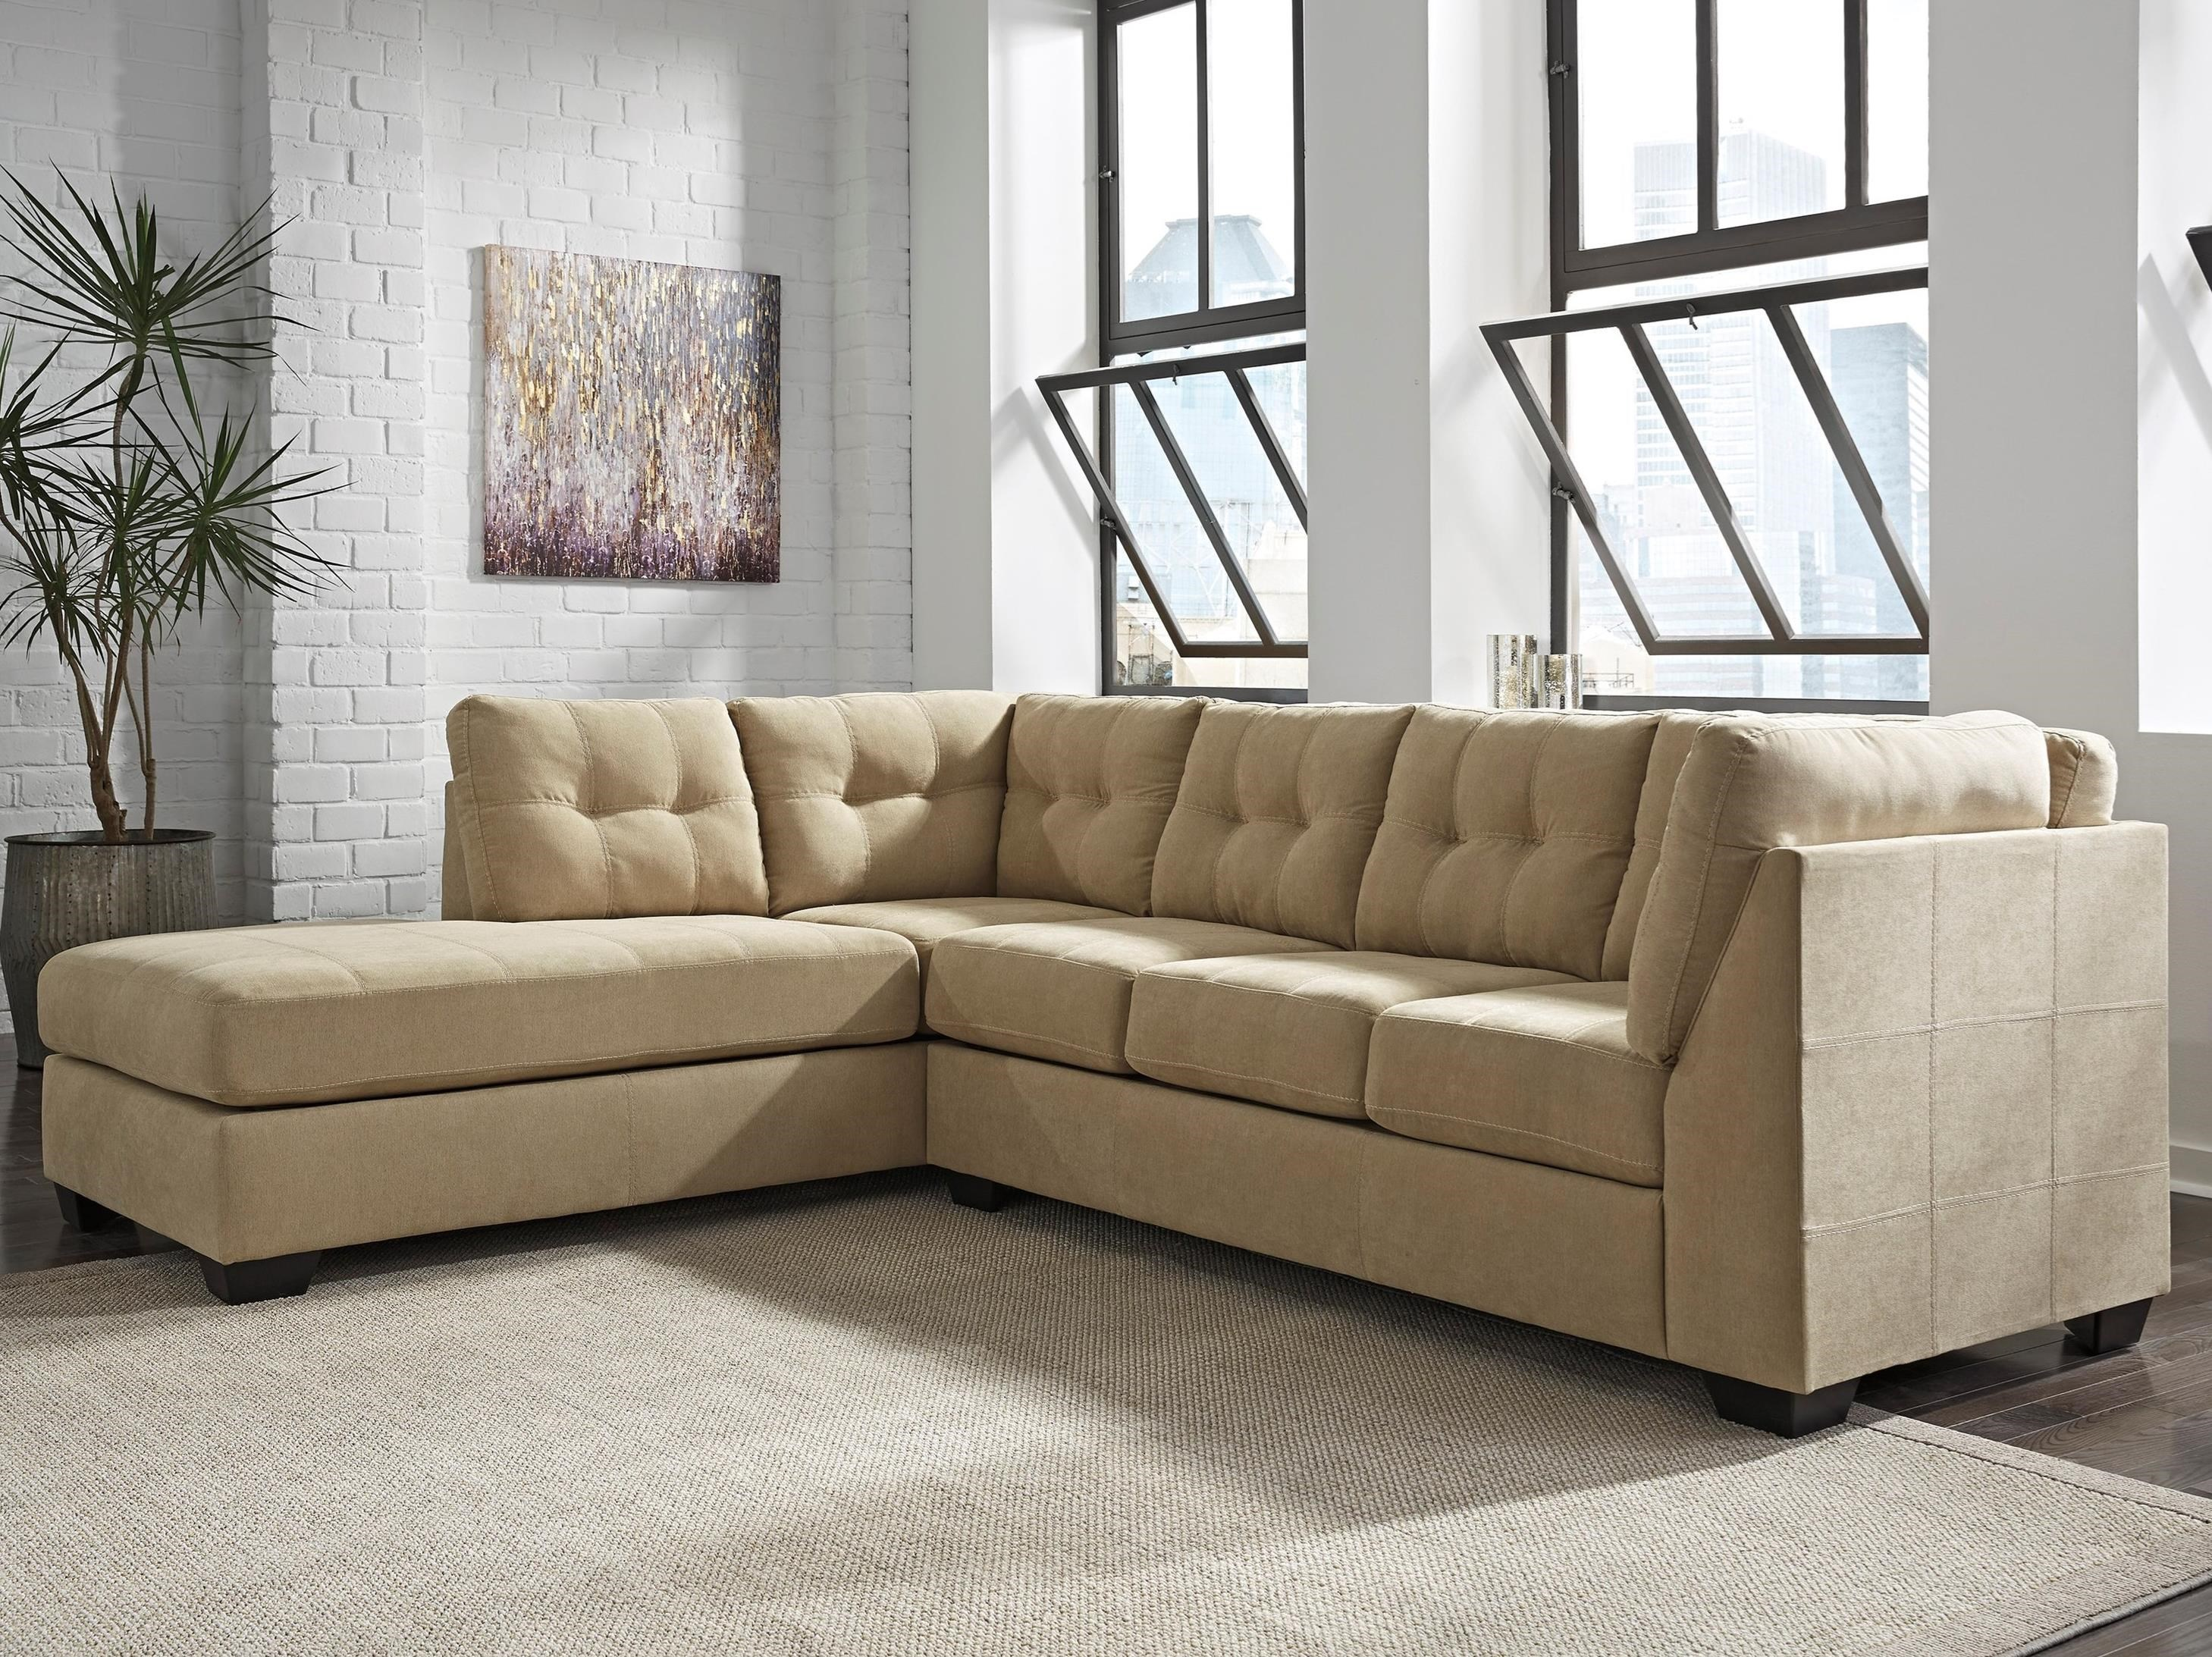 Benchcraft Maier - Cocoa 2-Piece Sectional with Left Chaise - Dunk u0026 Bright Furniture - Sectional Sofas : 2 piece sectional sofa with chaise - Sectionals, Sofas & Couches